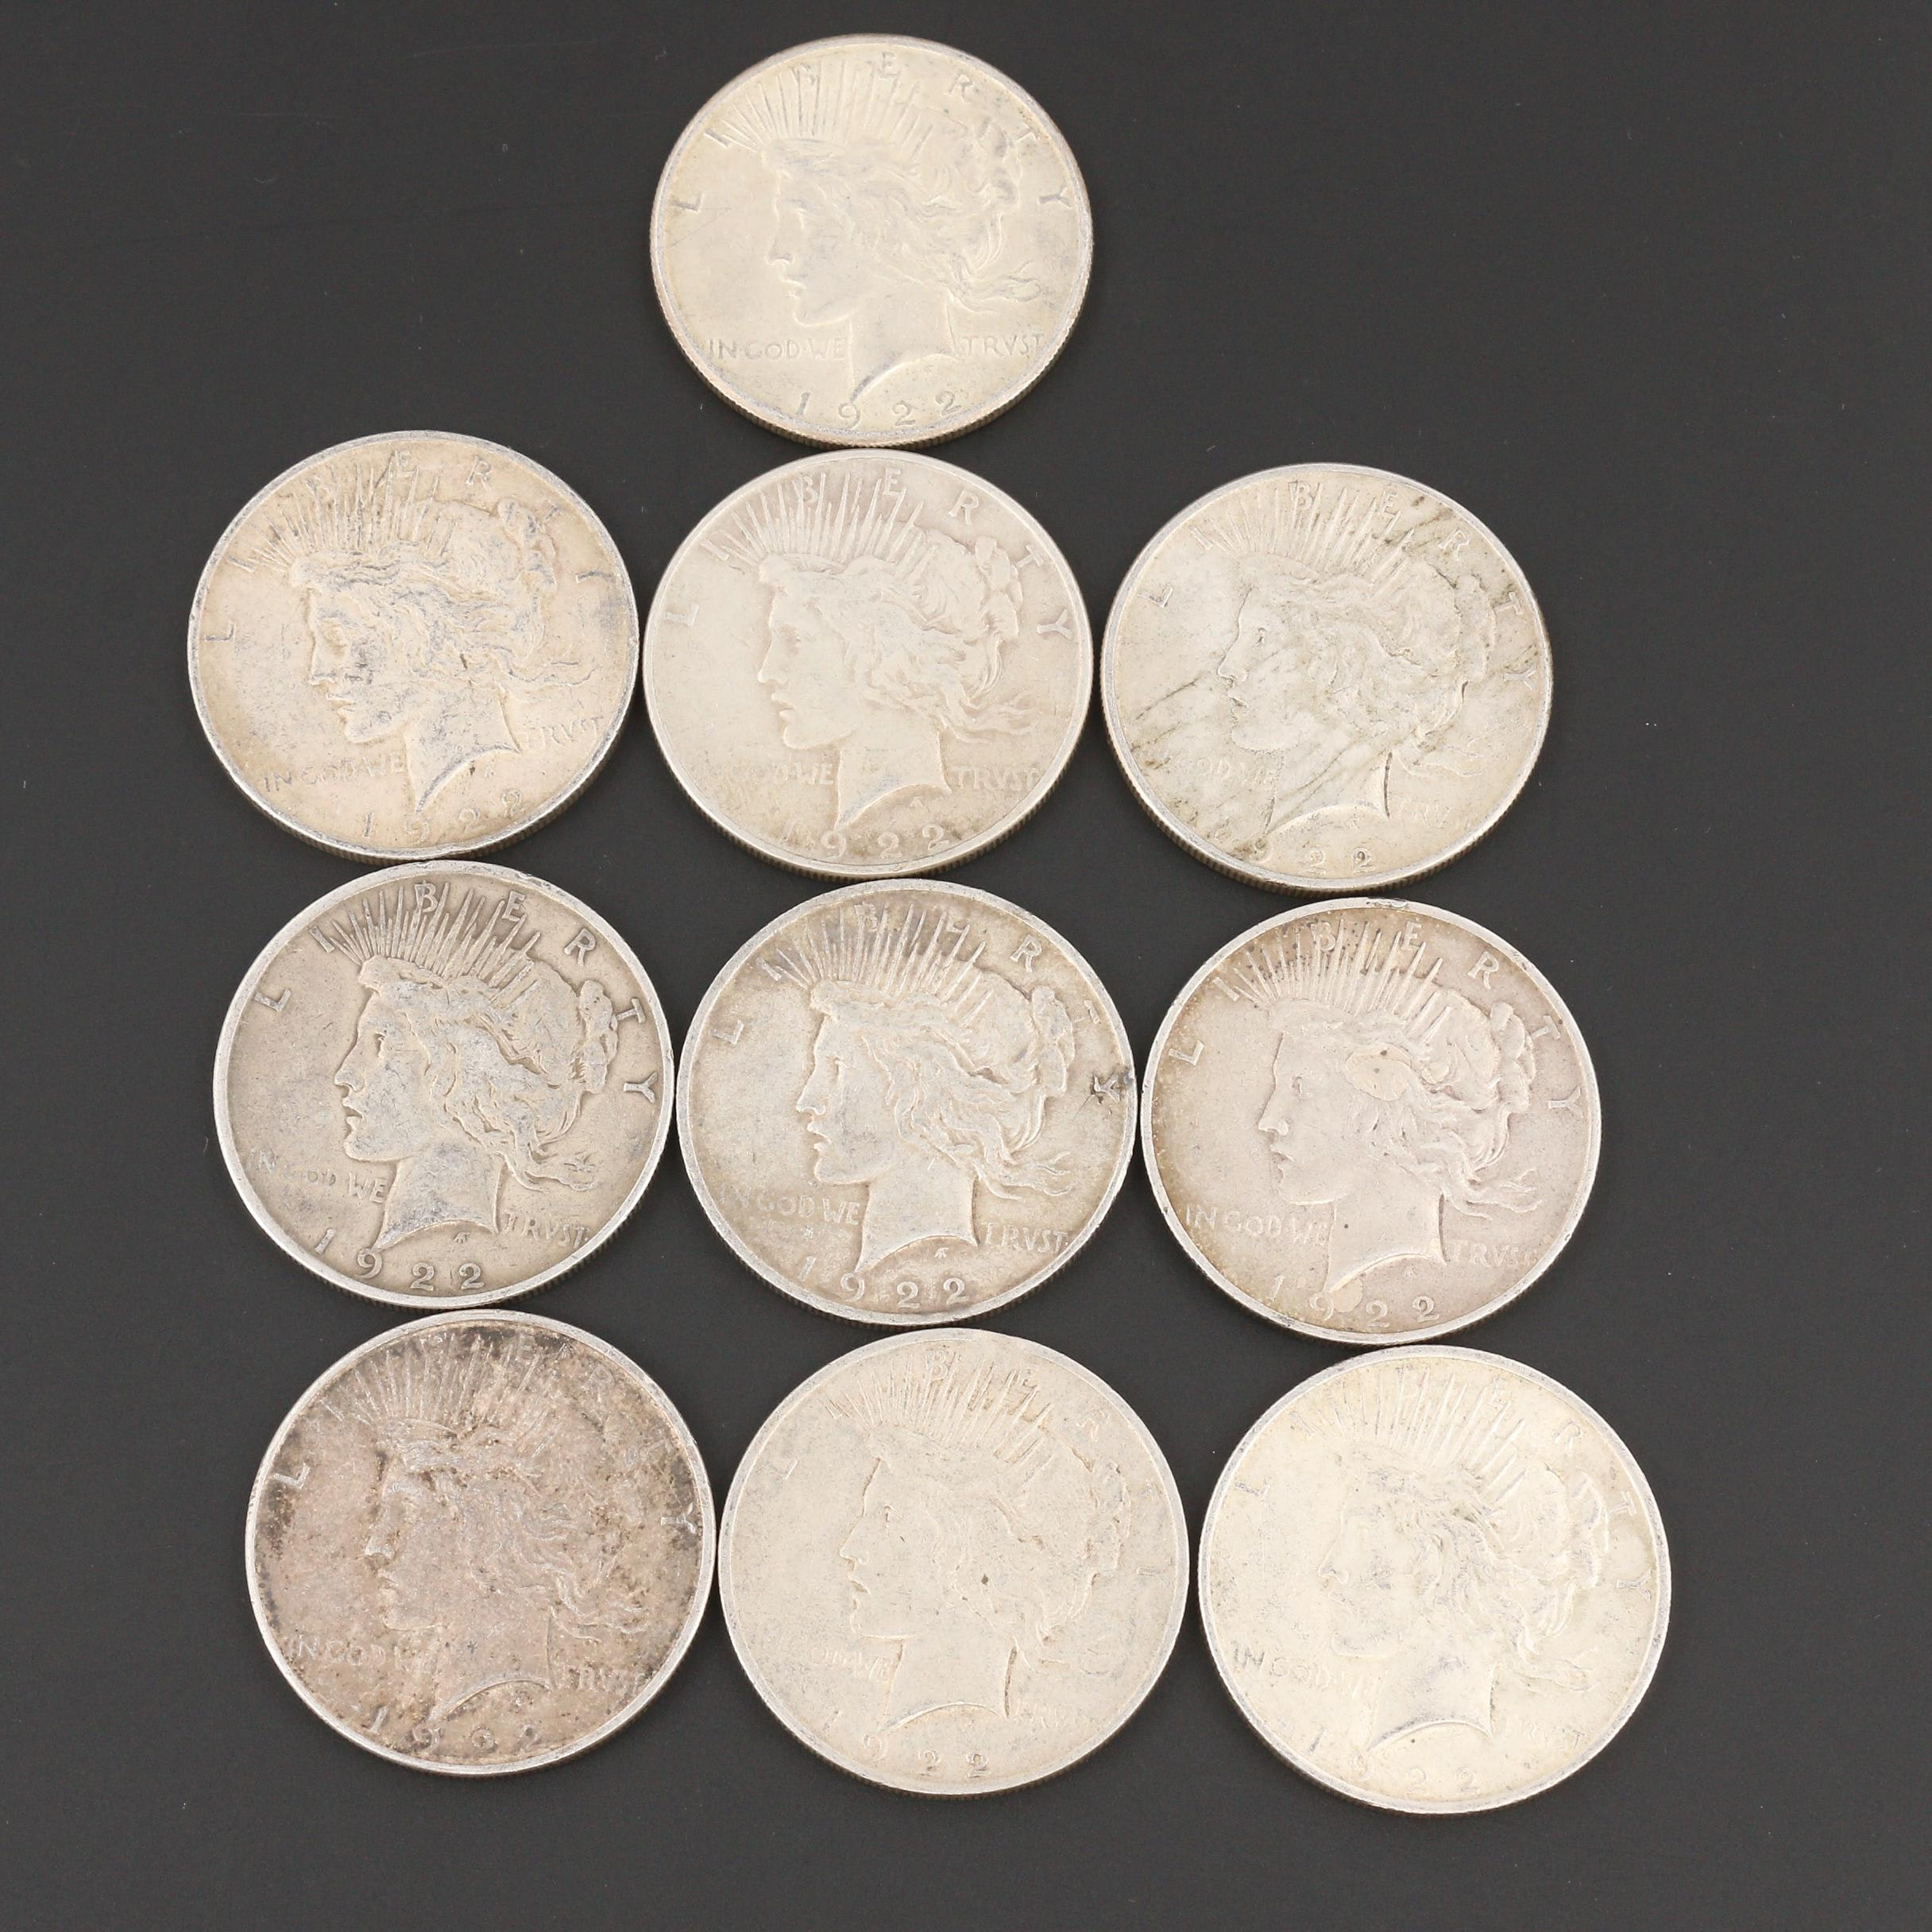 Group of Ten Silver Peace Dollars from 1922